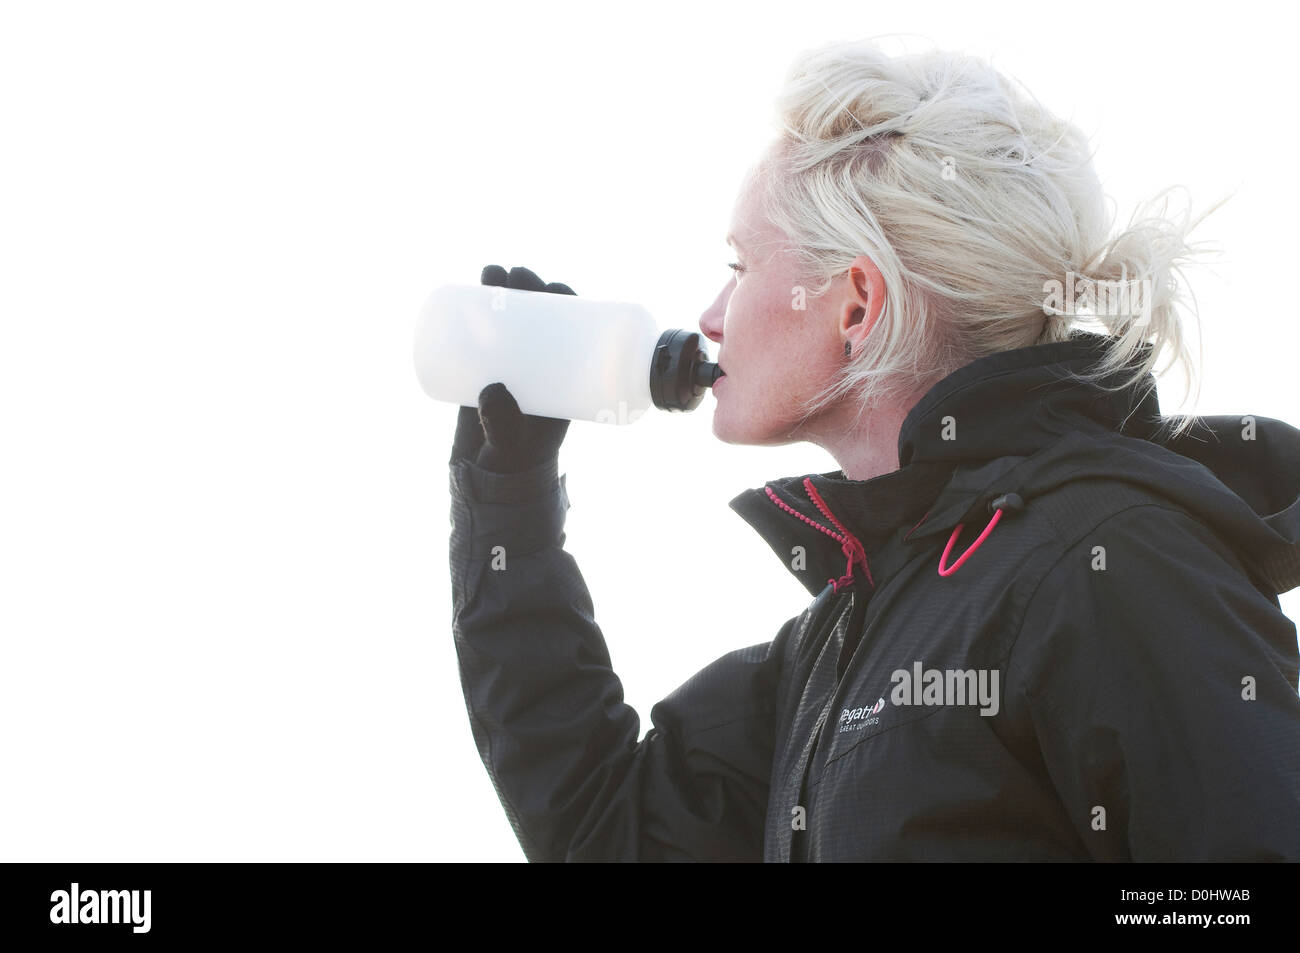 female jogger drinking from water bottle - Stock Image